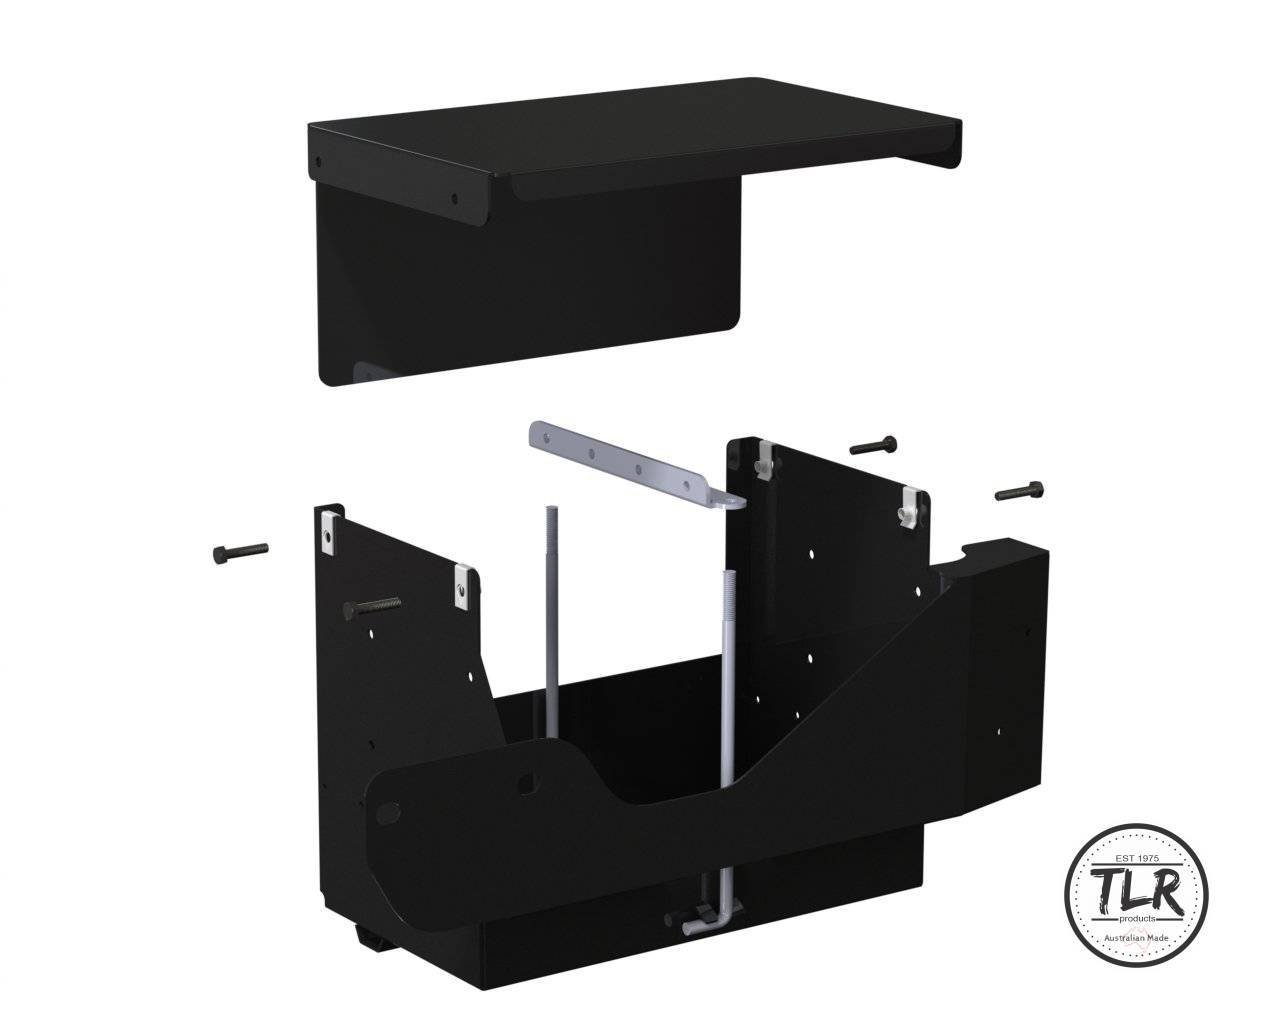 12″ BATTERY BOX LHSR MOUNT TO SUIT FORD RANGER & MAZDA BT-50